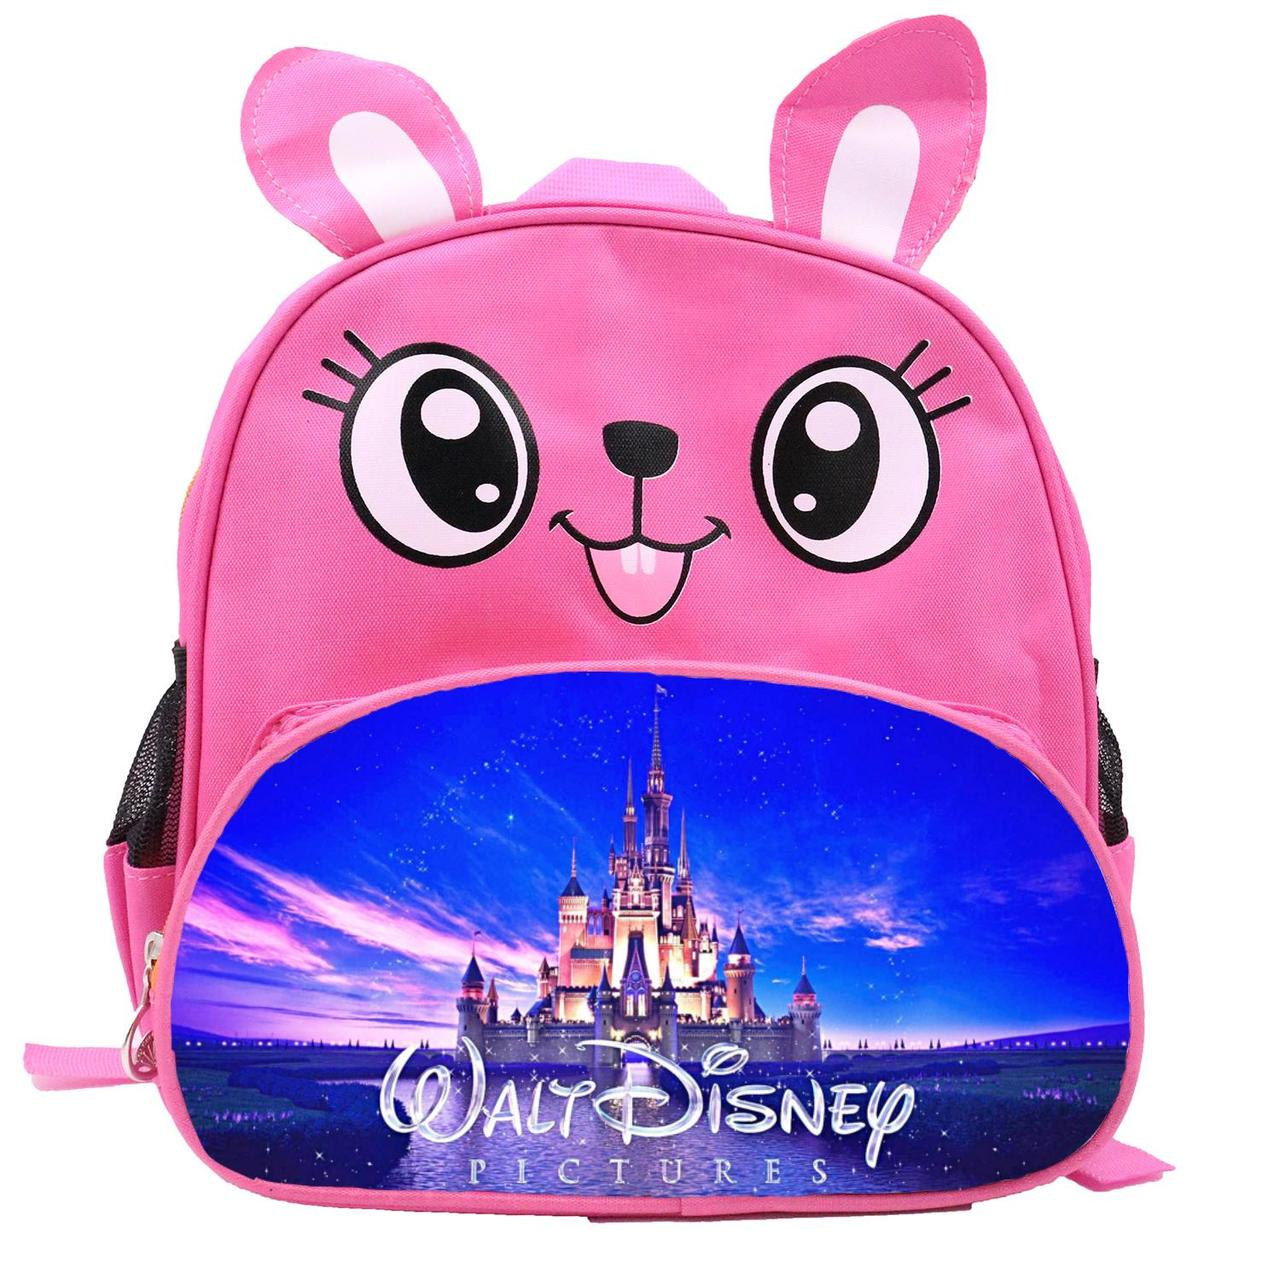 5580a4c3cef ... Backpack Children s School Bag for Boys and Girls Pink Rabbit Disney 1   Product No  10287930. Item specifics  Brand